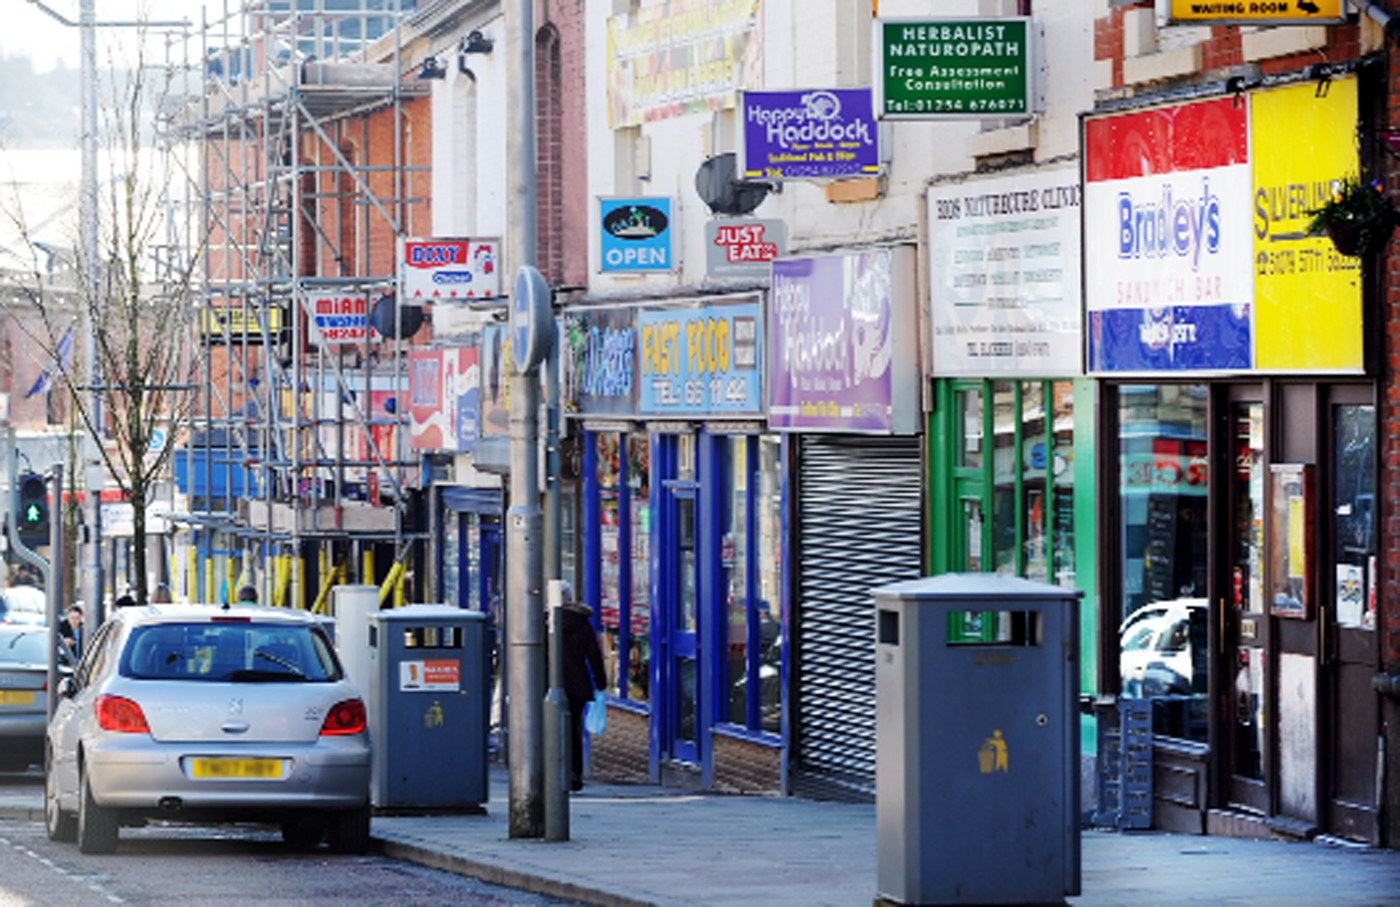 Darwen Street takeaways say they suffered during a parking crackdown